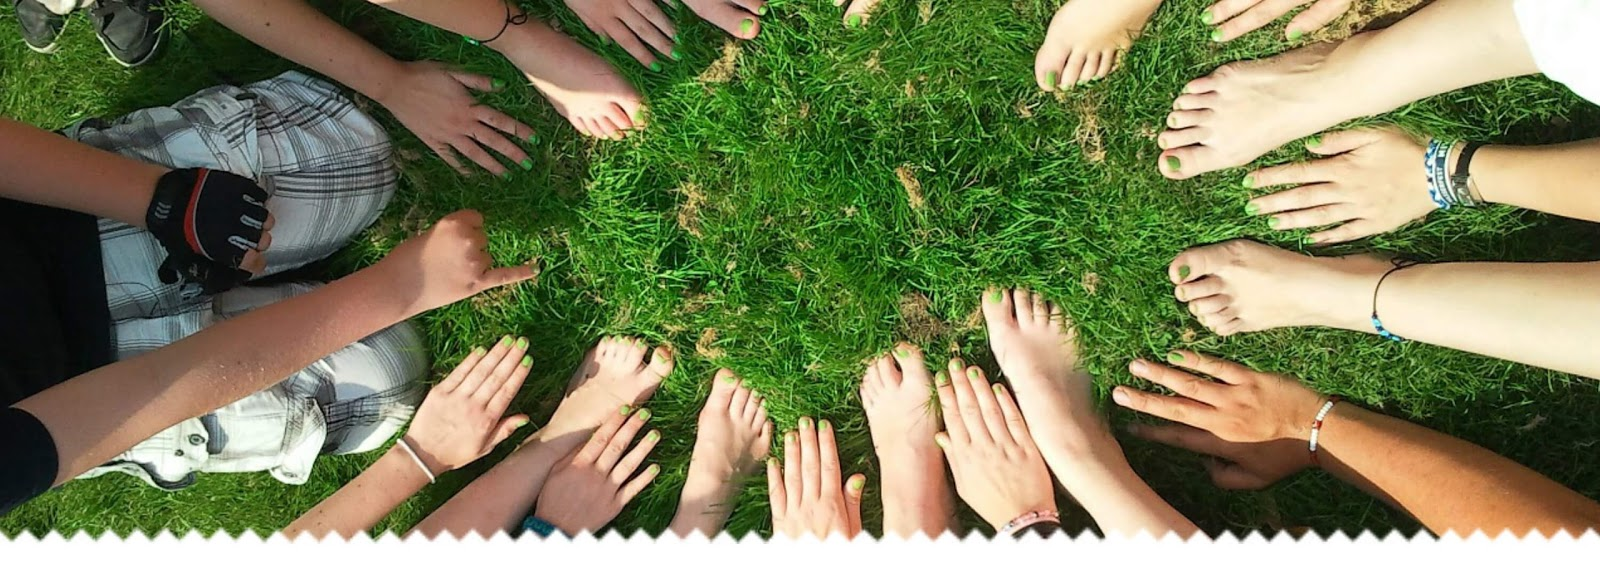 hands and feet together on grass